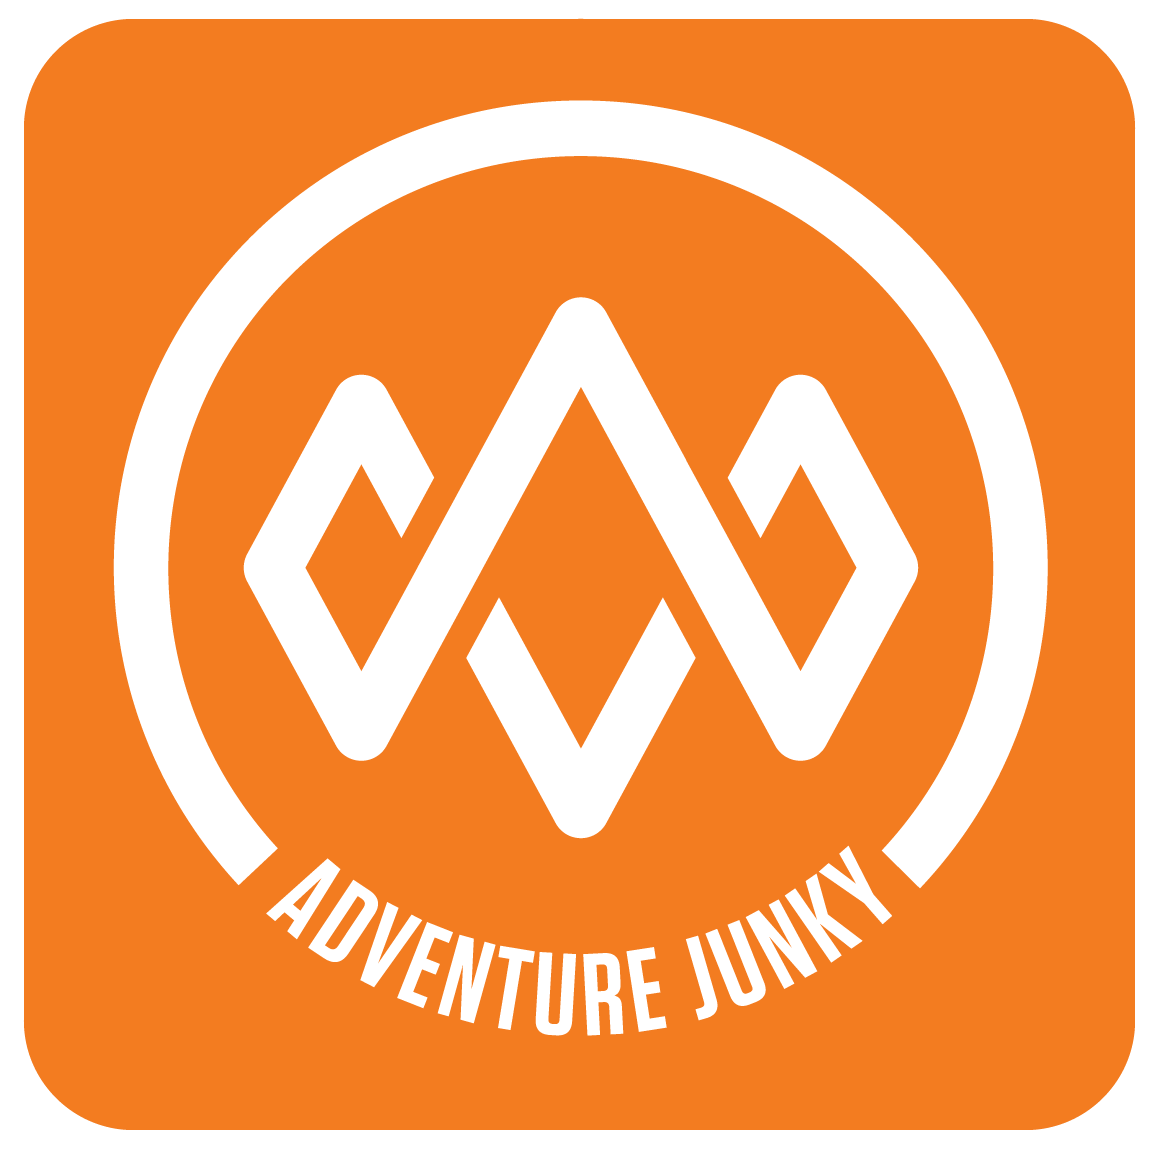 Adventure_Junky_logo_for_app.png